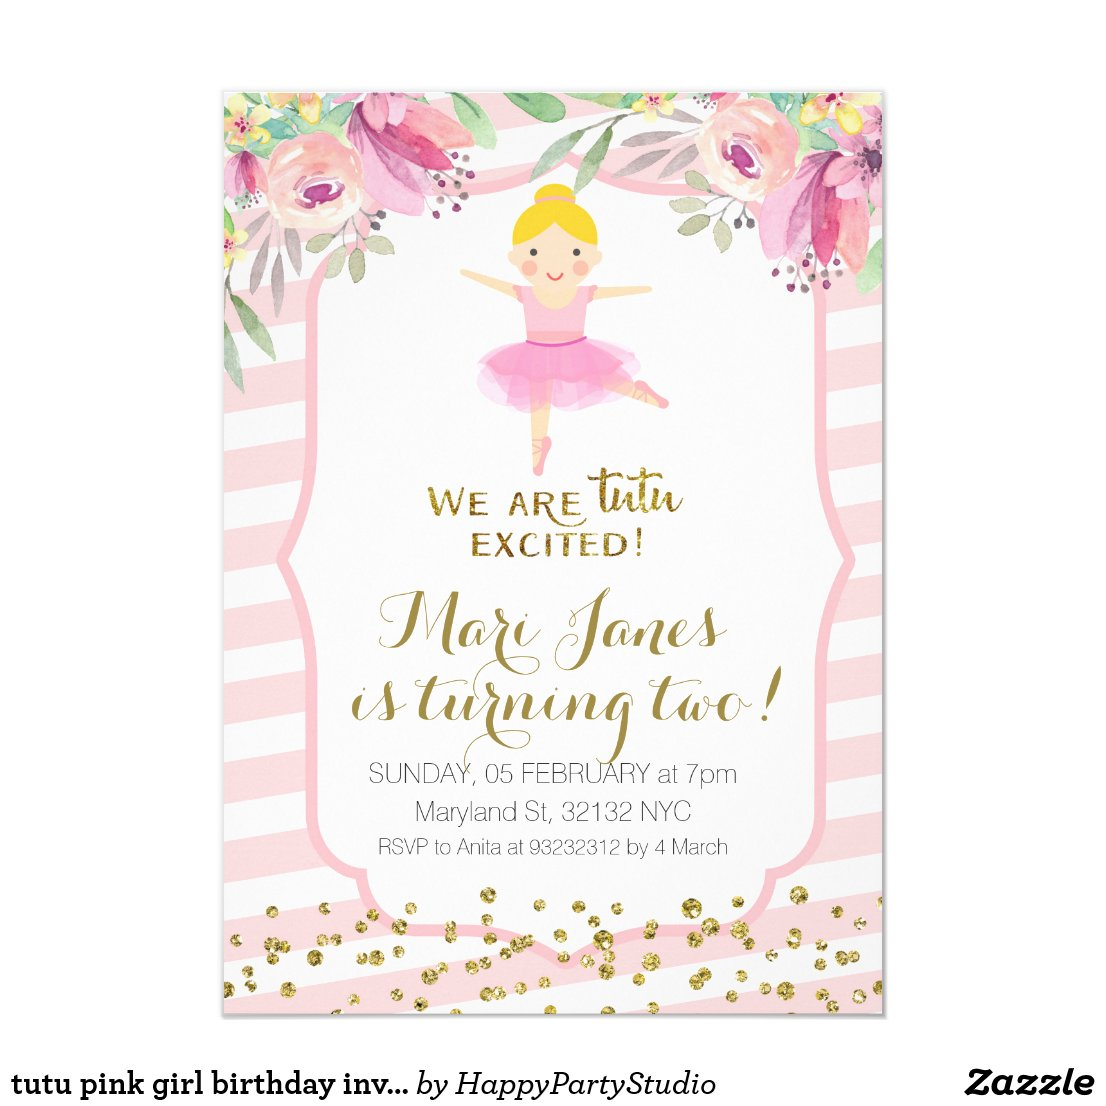 tutu pink girl birthday invitation